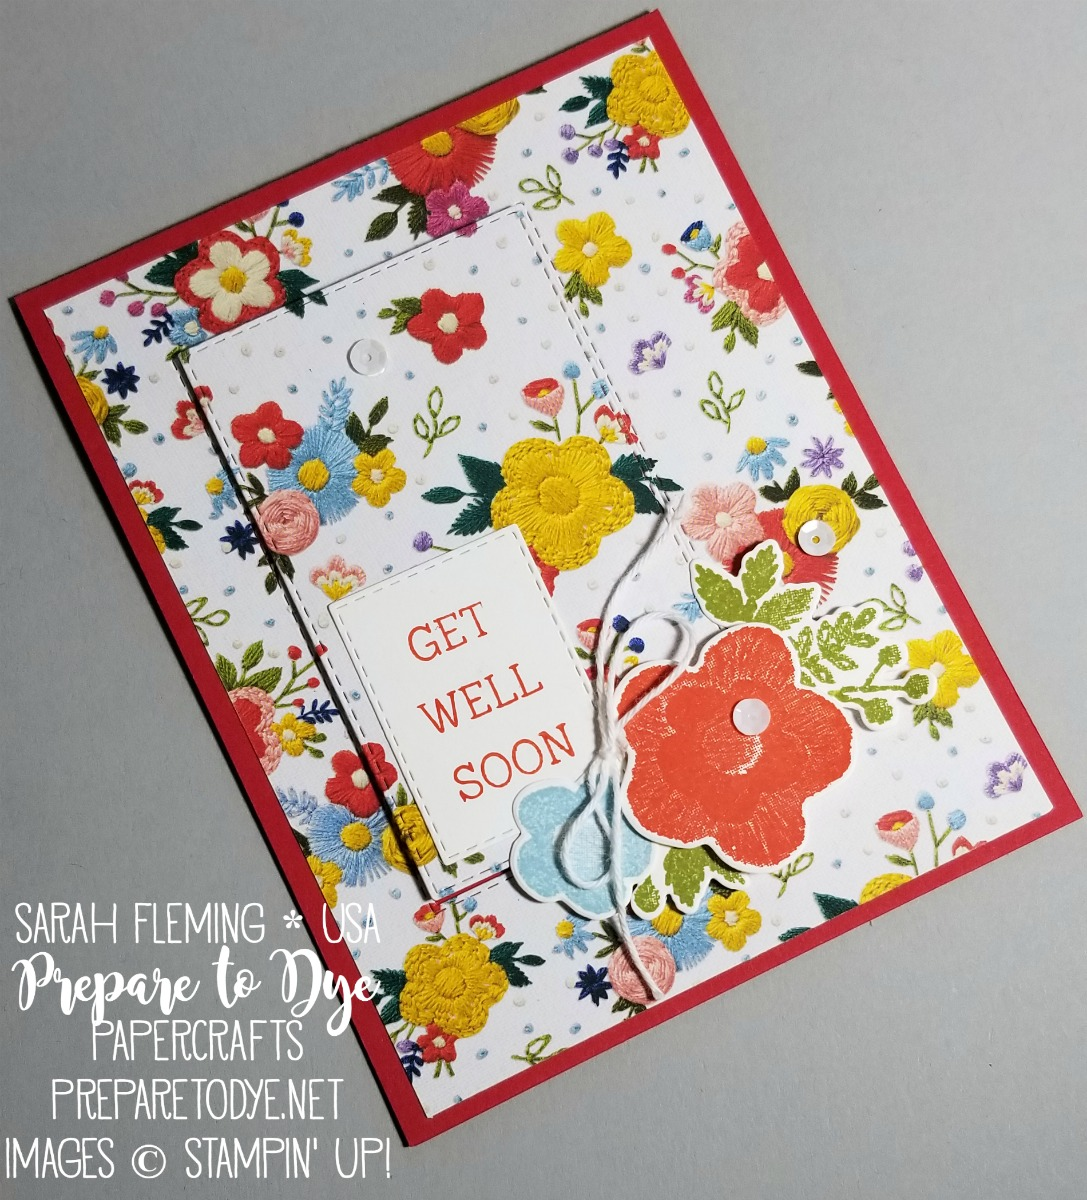 Stampin' Up! Needle & Thread bundle with Needlepoint Elements framelits, Needlepoint Nook paper, and Rectangle Stitched Framelits - handmade get well soon card with embroidery - Sarah Fleming - Prepare to Dye Papercrafts